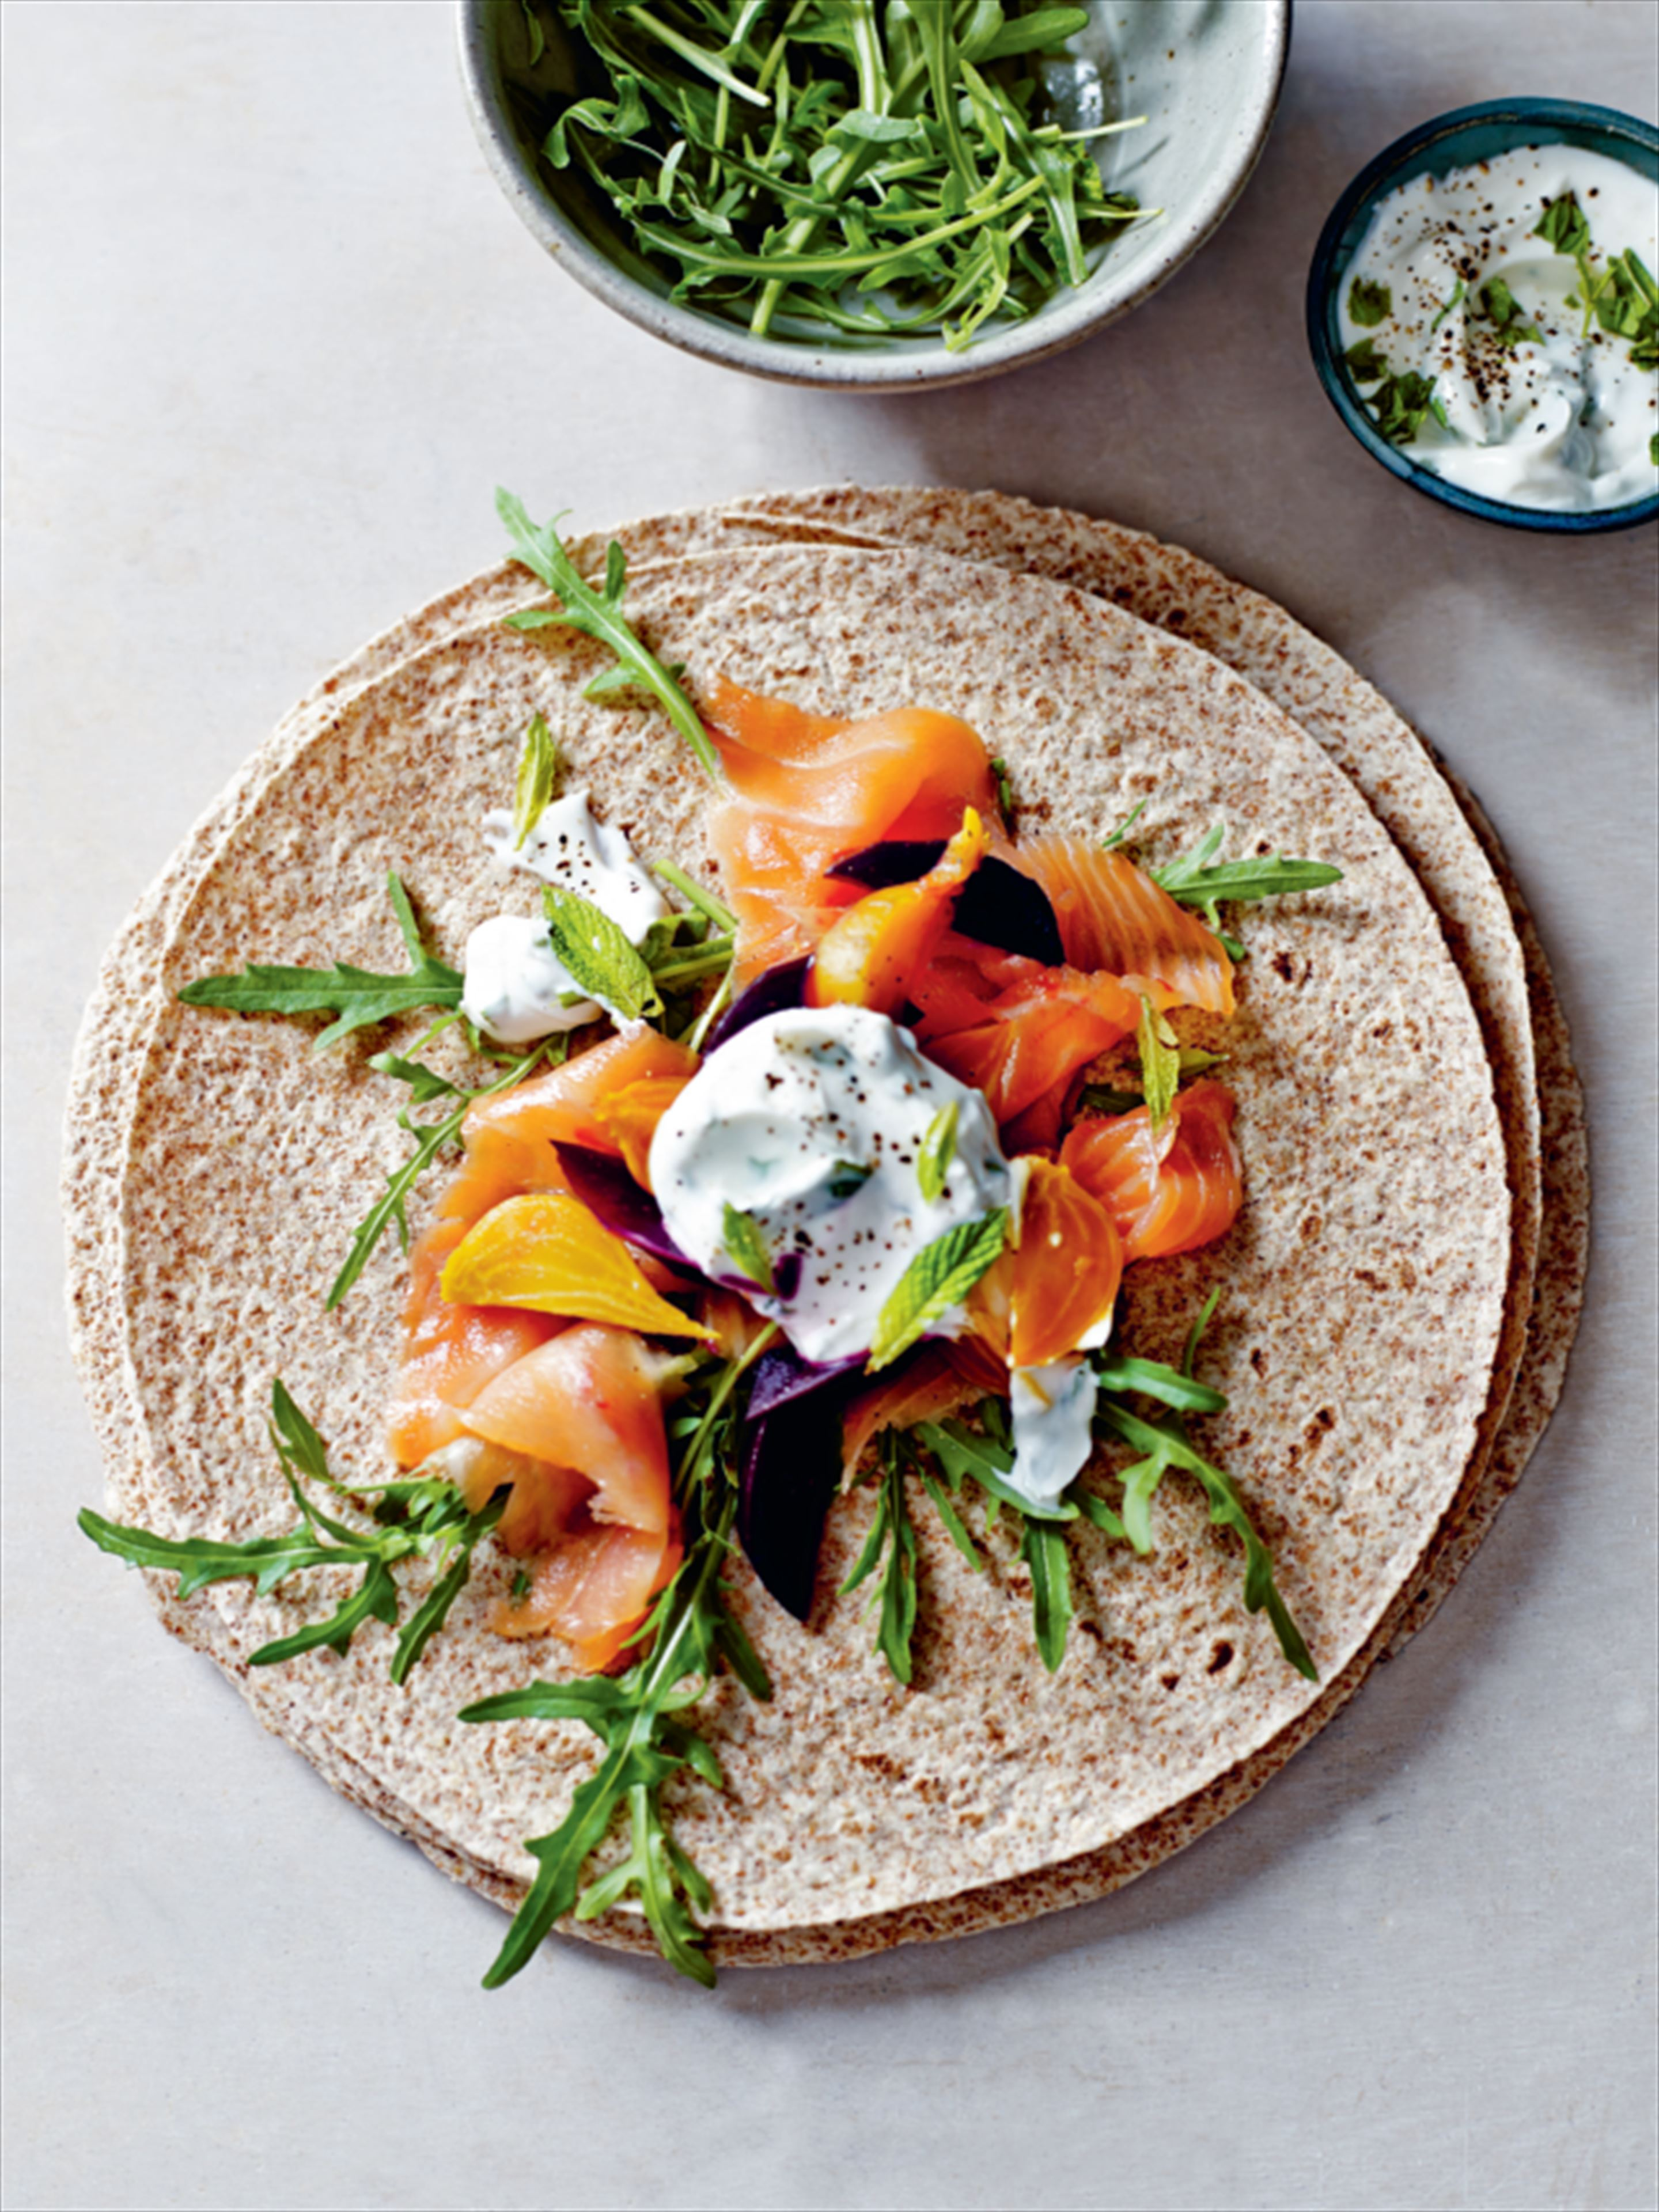 Smoked salmon, beetroot and minted yogurt wrap